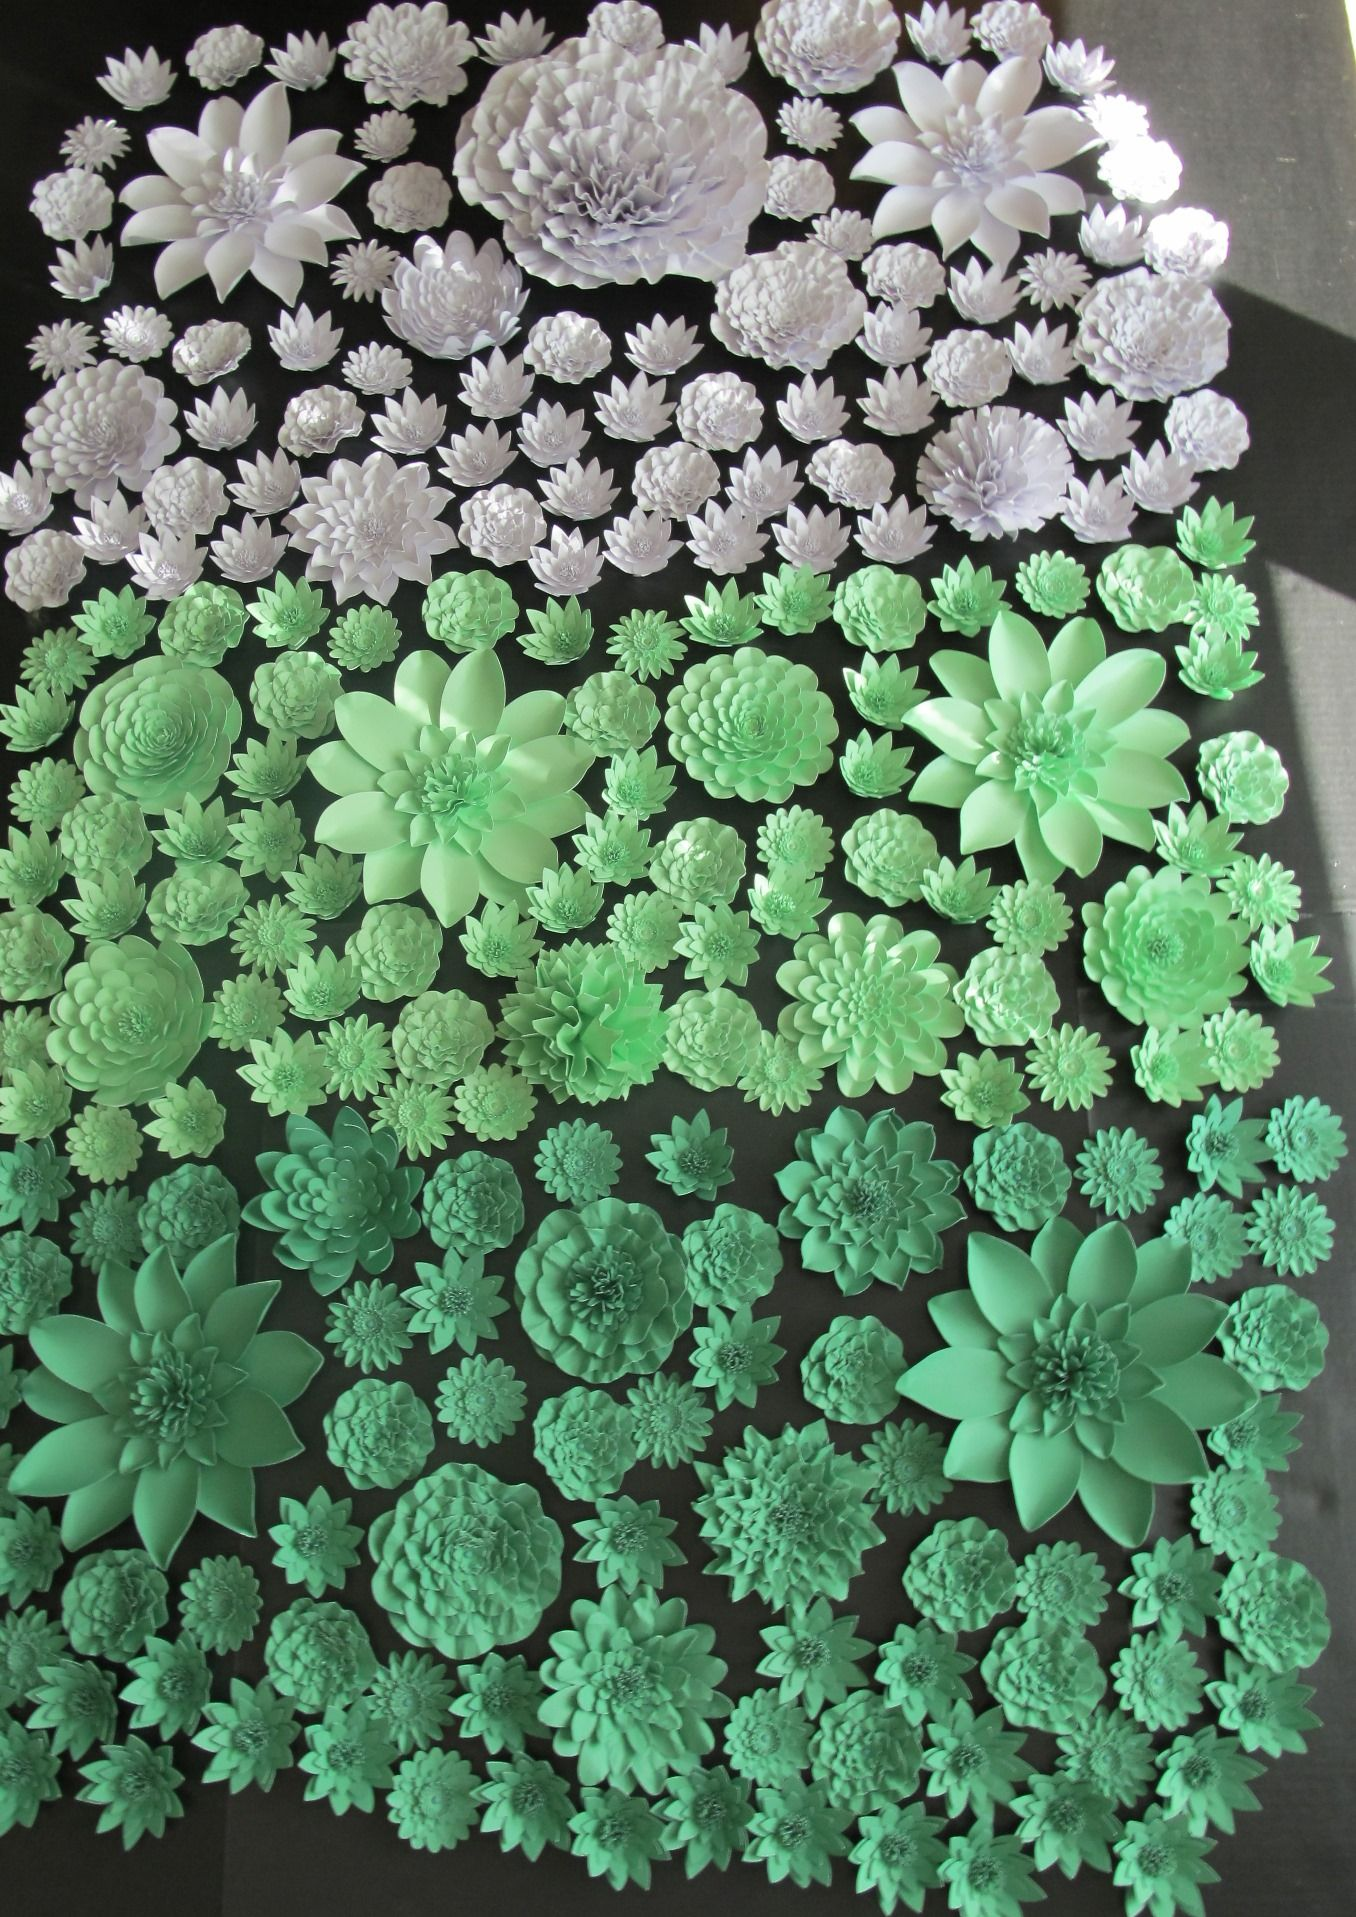 A wall of ombre paper flowers in mint greens and white